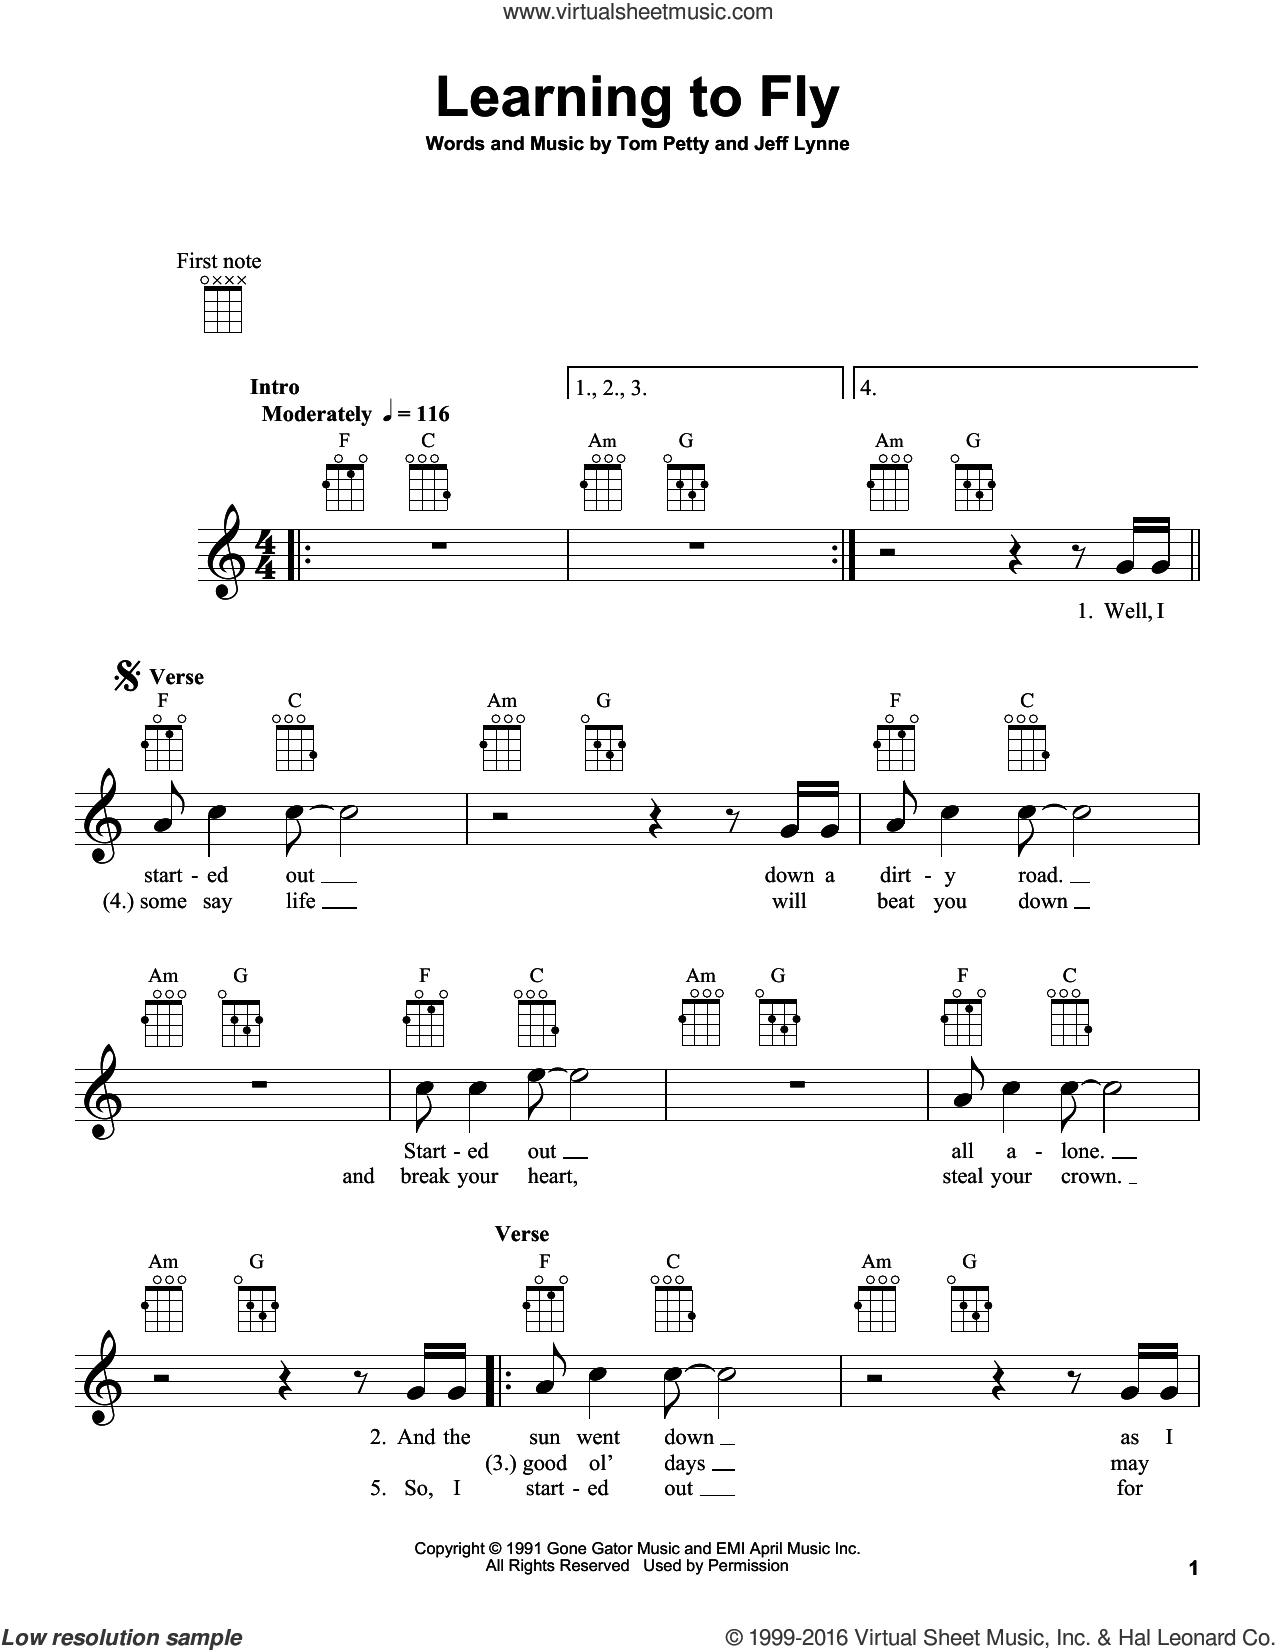 Learning To Fly sheet music for ukulele by Jeff Lynne and Tom Petty. Score Image Preview.